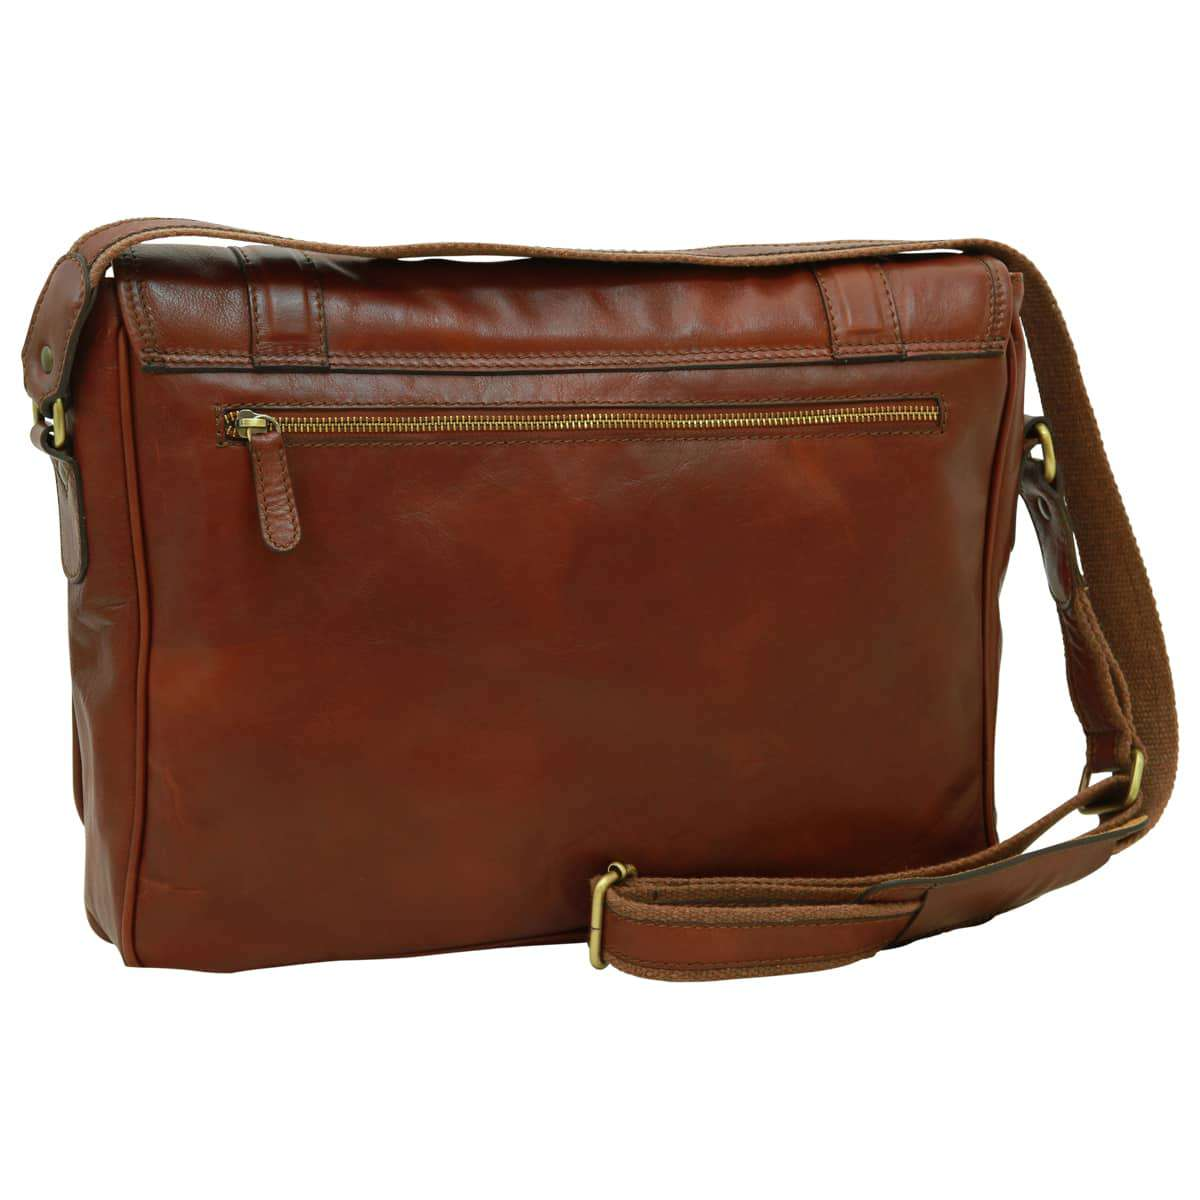 Soft Calfskin Leather Messenger Bag - Brown | 030491MA UK | Old Angler Firenze